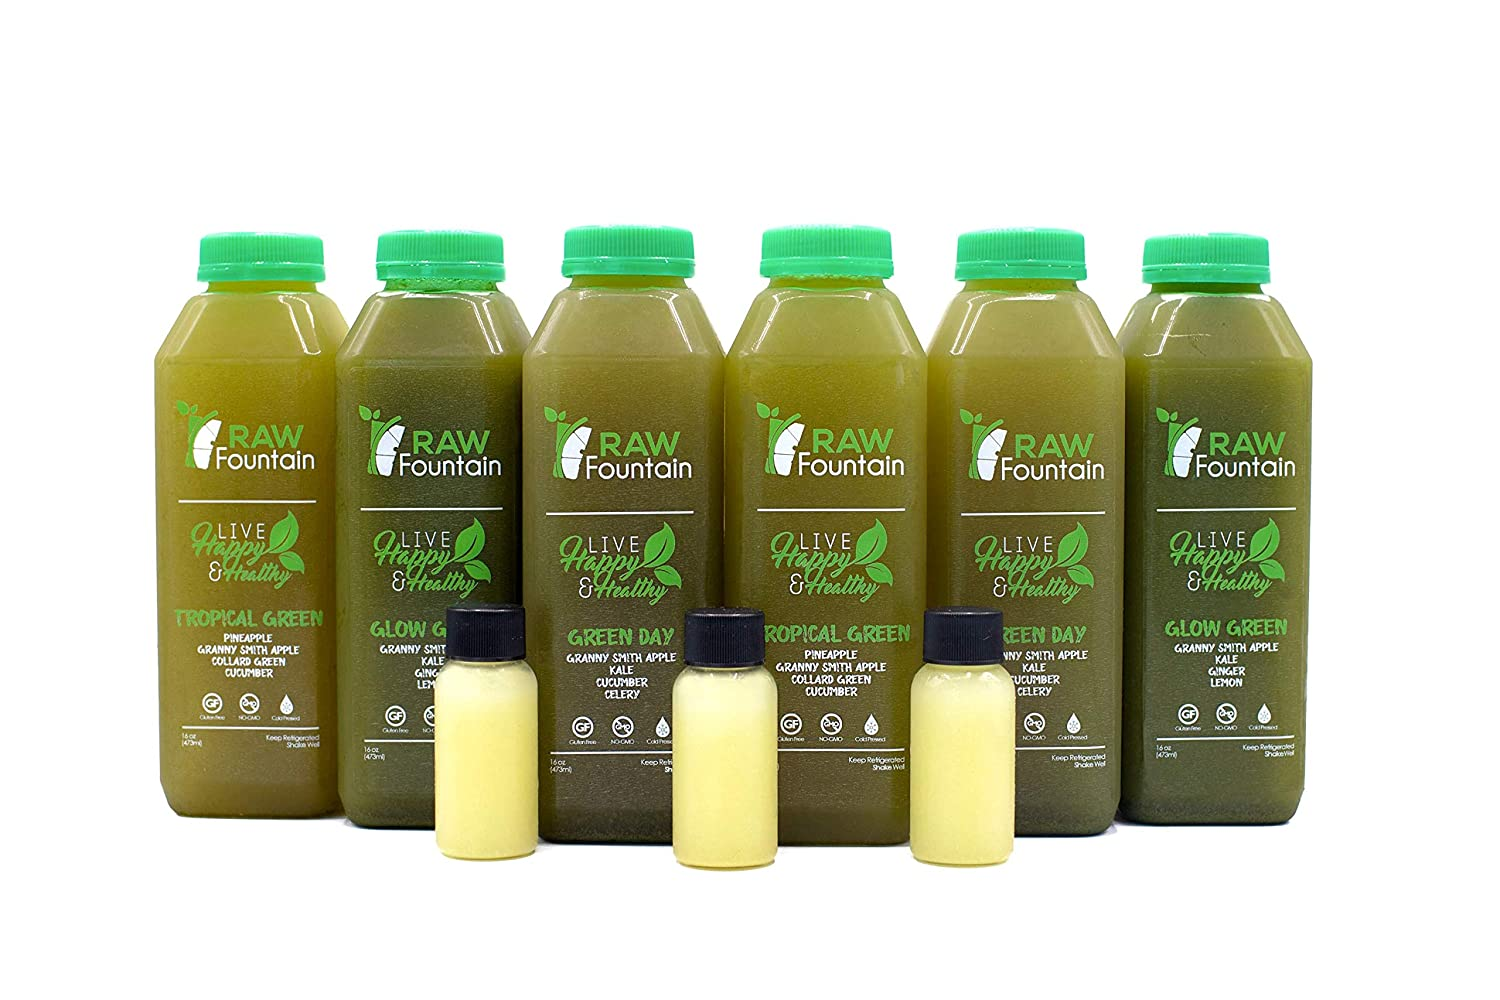 RAW Fountain 3 Day Green Juice Cleanse, 100 Raw Natural Vegan Detox, Cold Pressed Juices, 18 Bottles 16oz 3 Ginger Shots